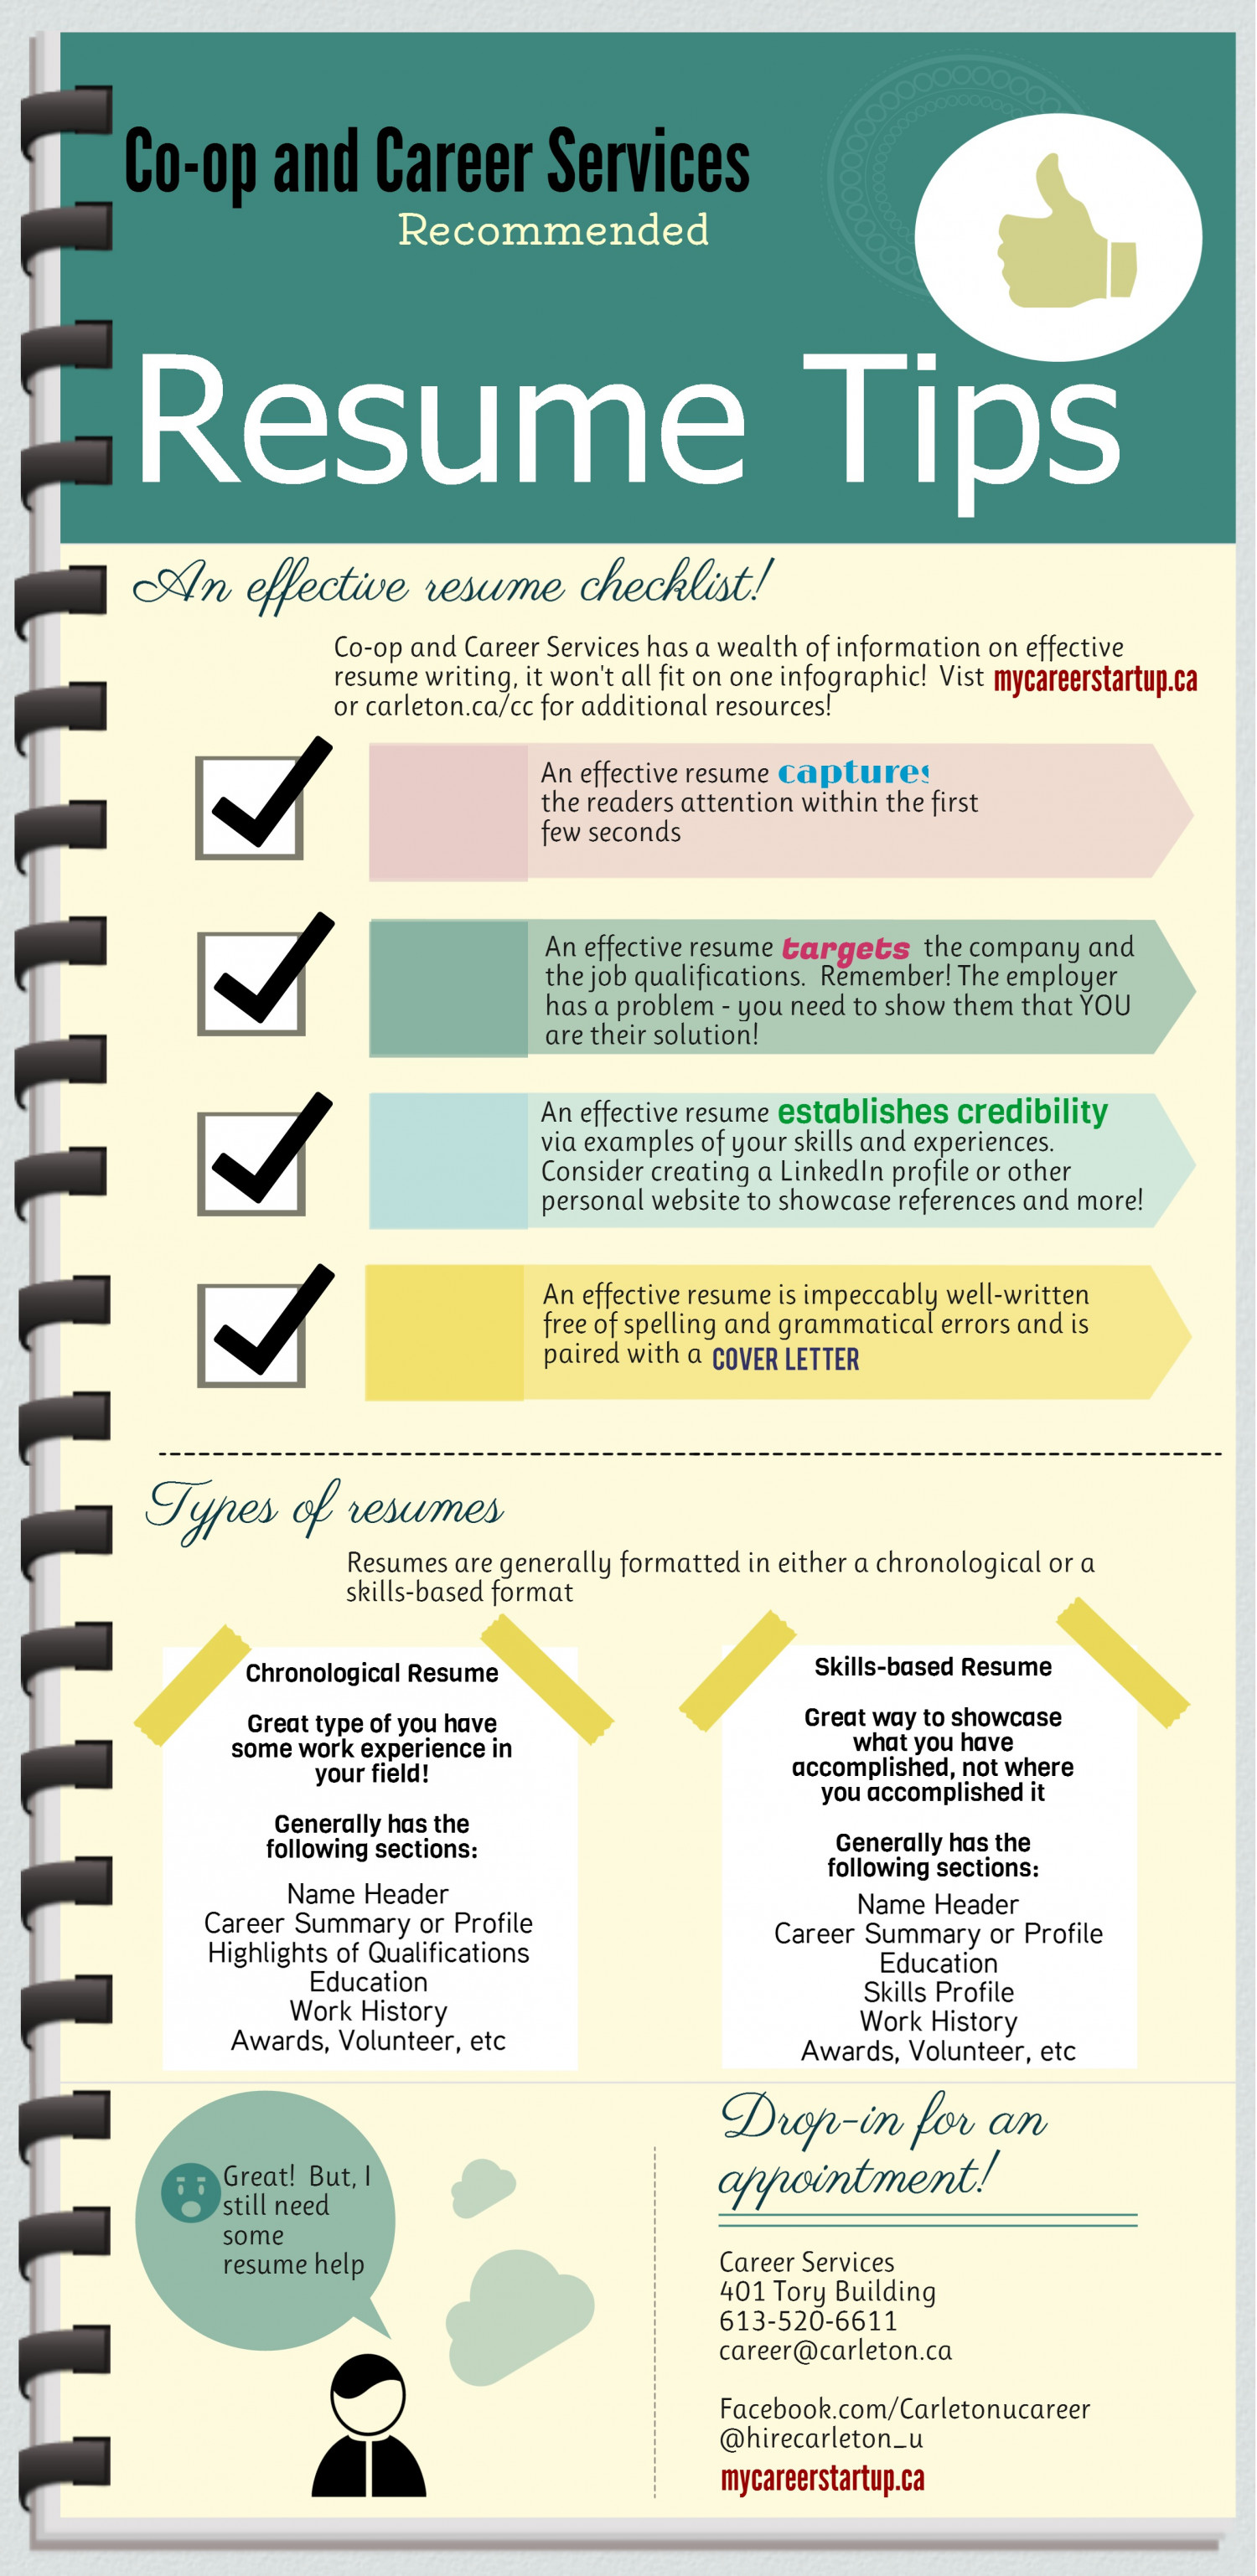 Nice Resume Tips: An Effective Resume Checklists Infographic